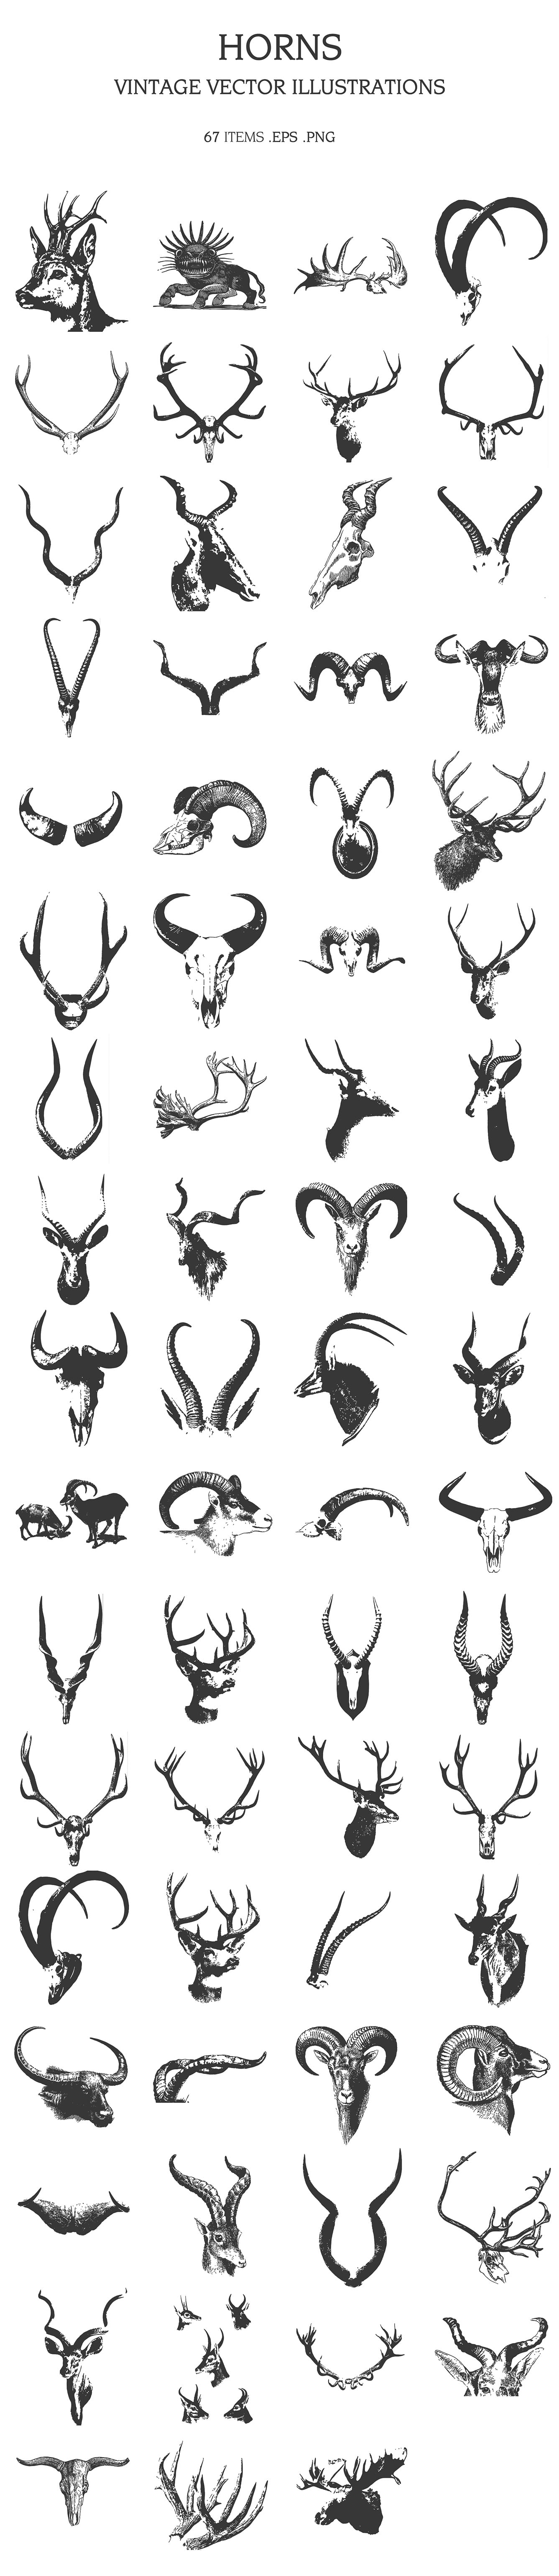 Horns of different breeds of animals.